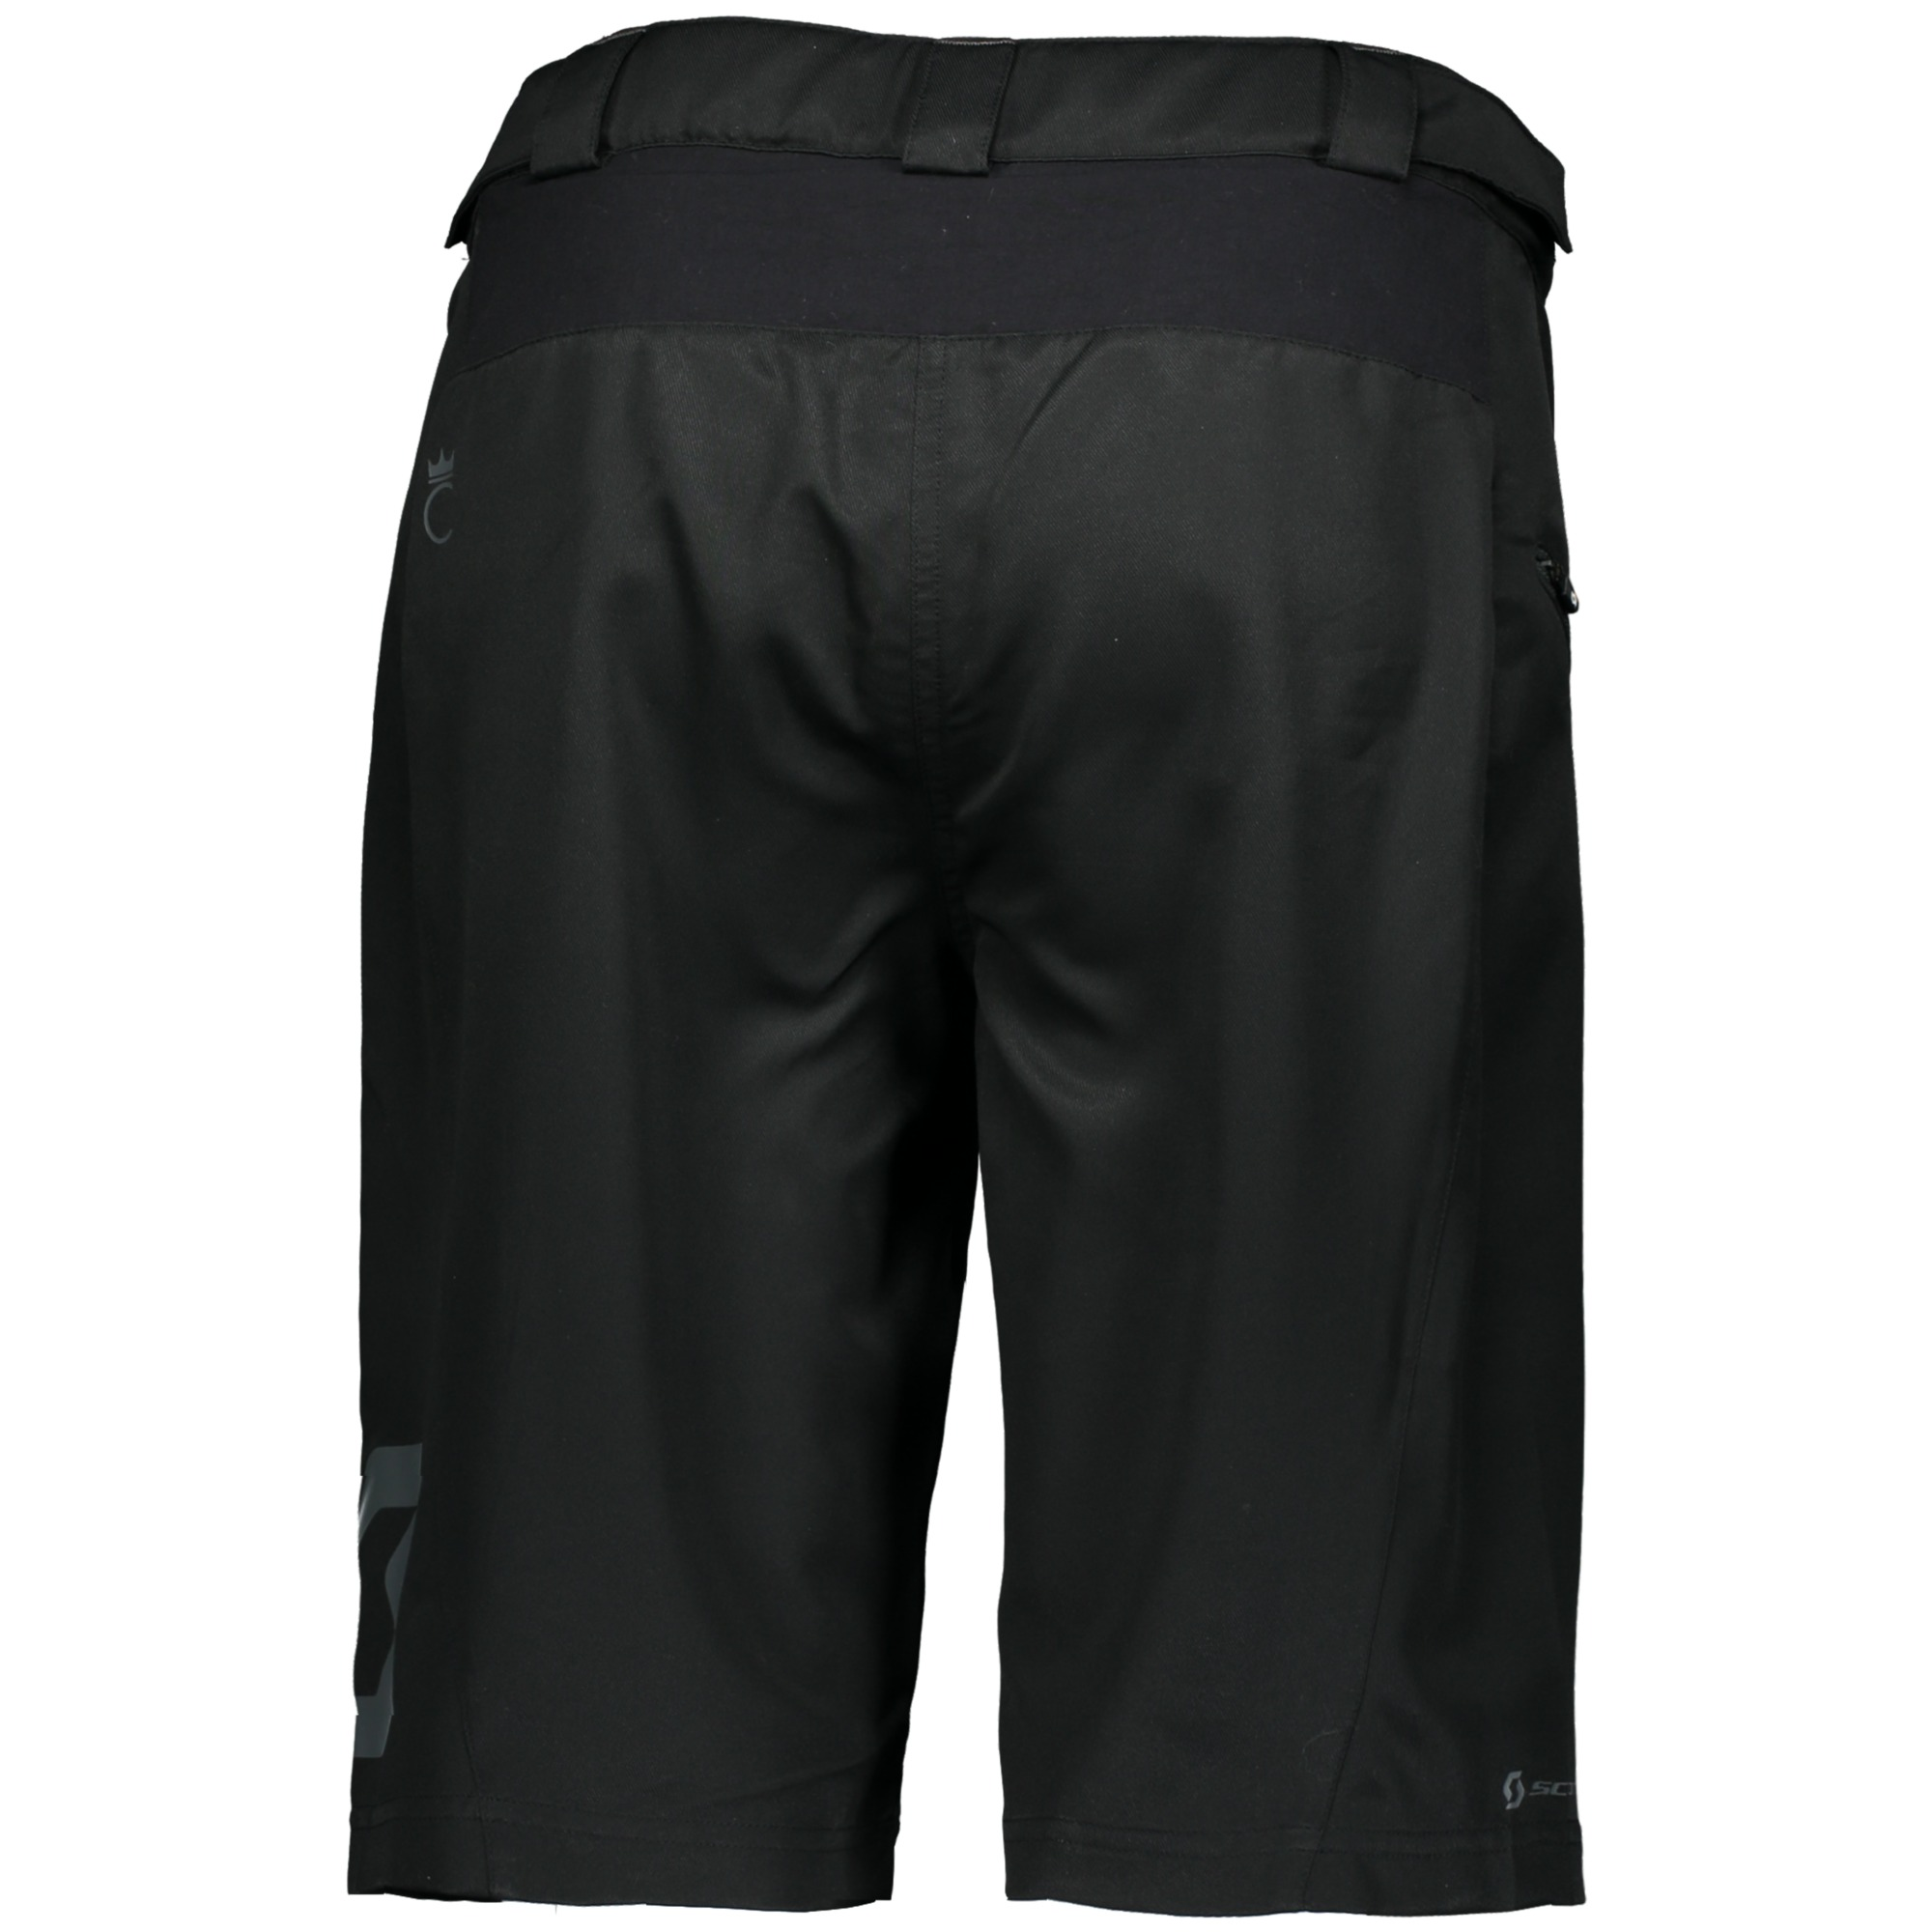 SCOTT Trail 30 ls/fit w/pad Women's Shorts